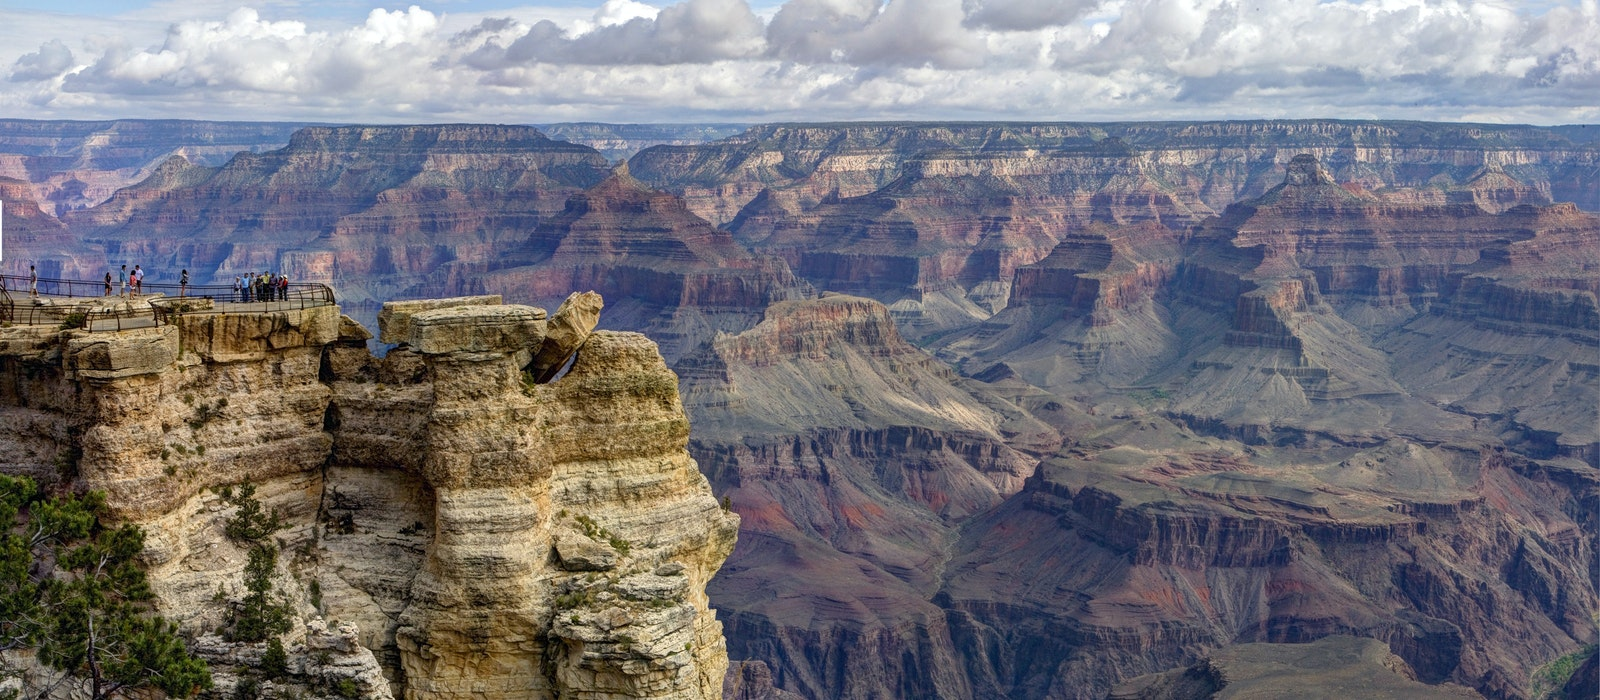 On February 26, 2019, Grand Canyon National Park will be 100 years old.